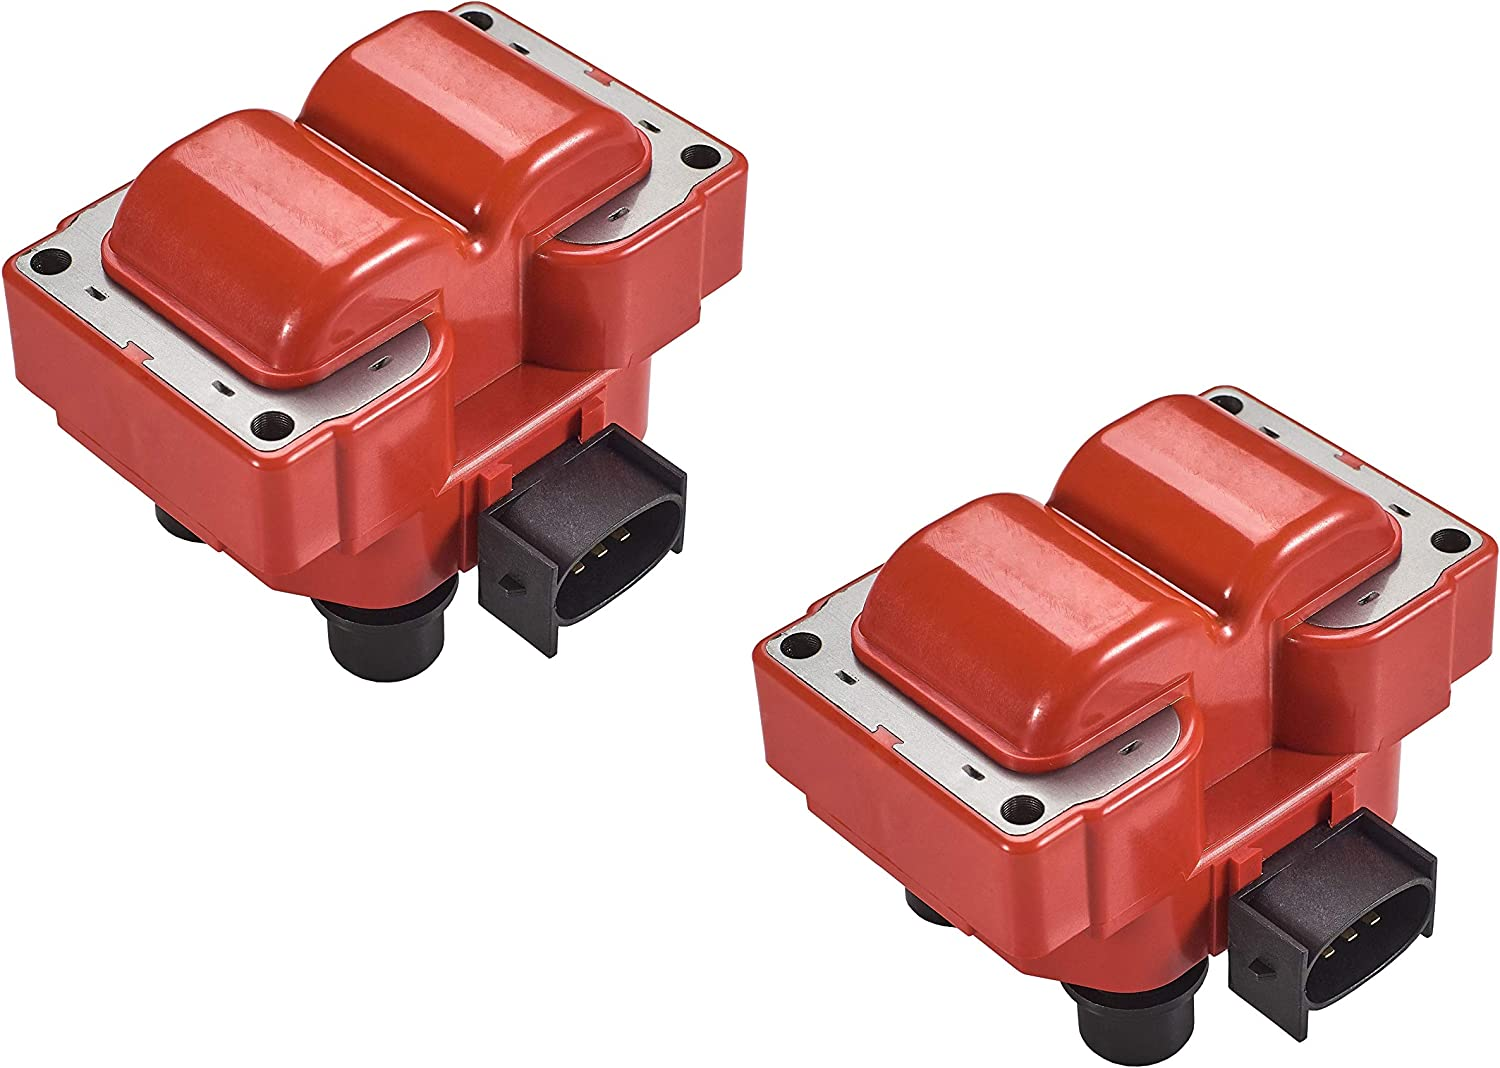 ENA Set of 2 Direct Ignition Coil Pack compatible with 1992-1999 Ford Crown Victoria F150 F250 Explorer Expedition Mustang Van Lincoln Mercury L4 V8 4.6L 5.0L